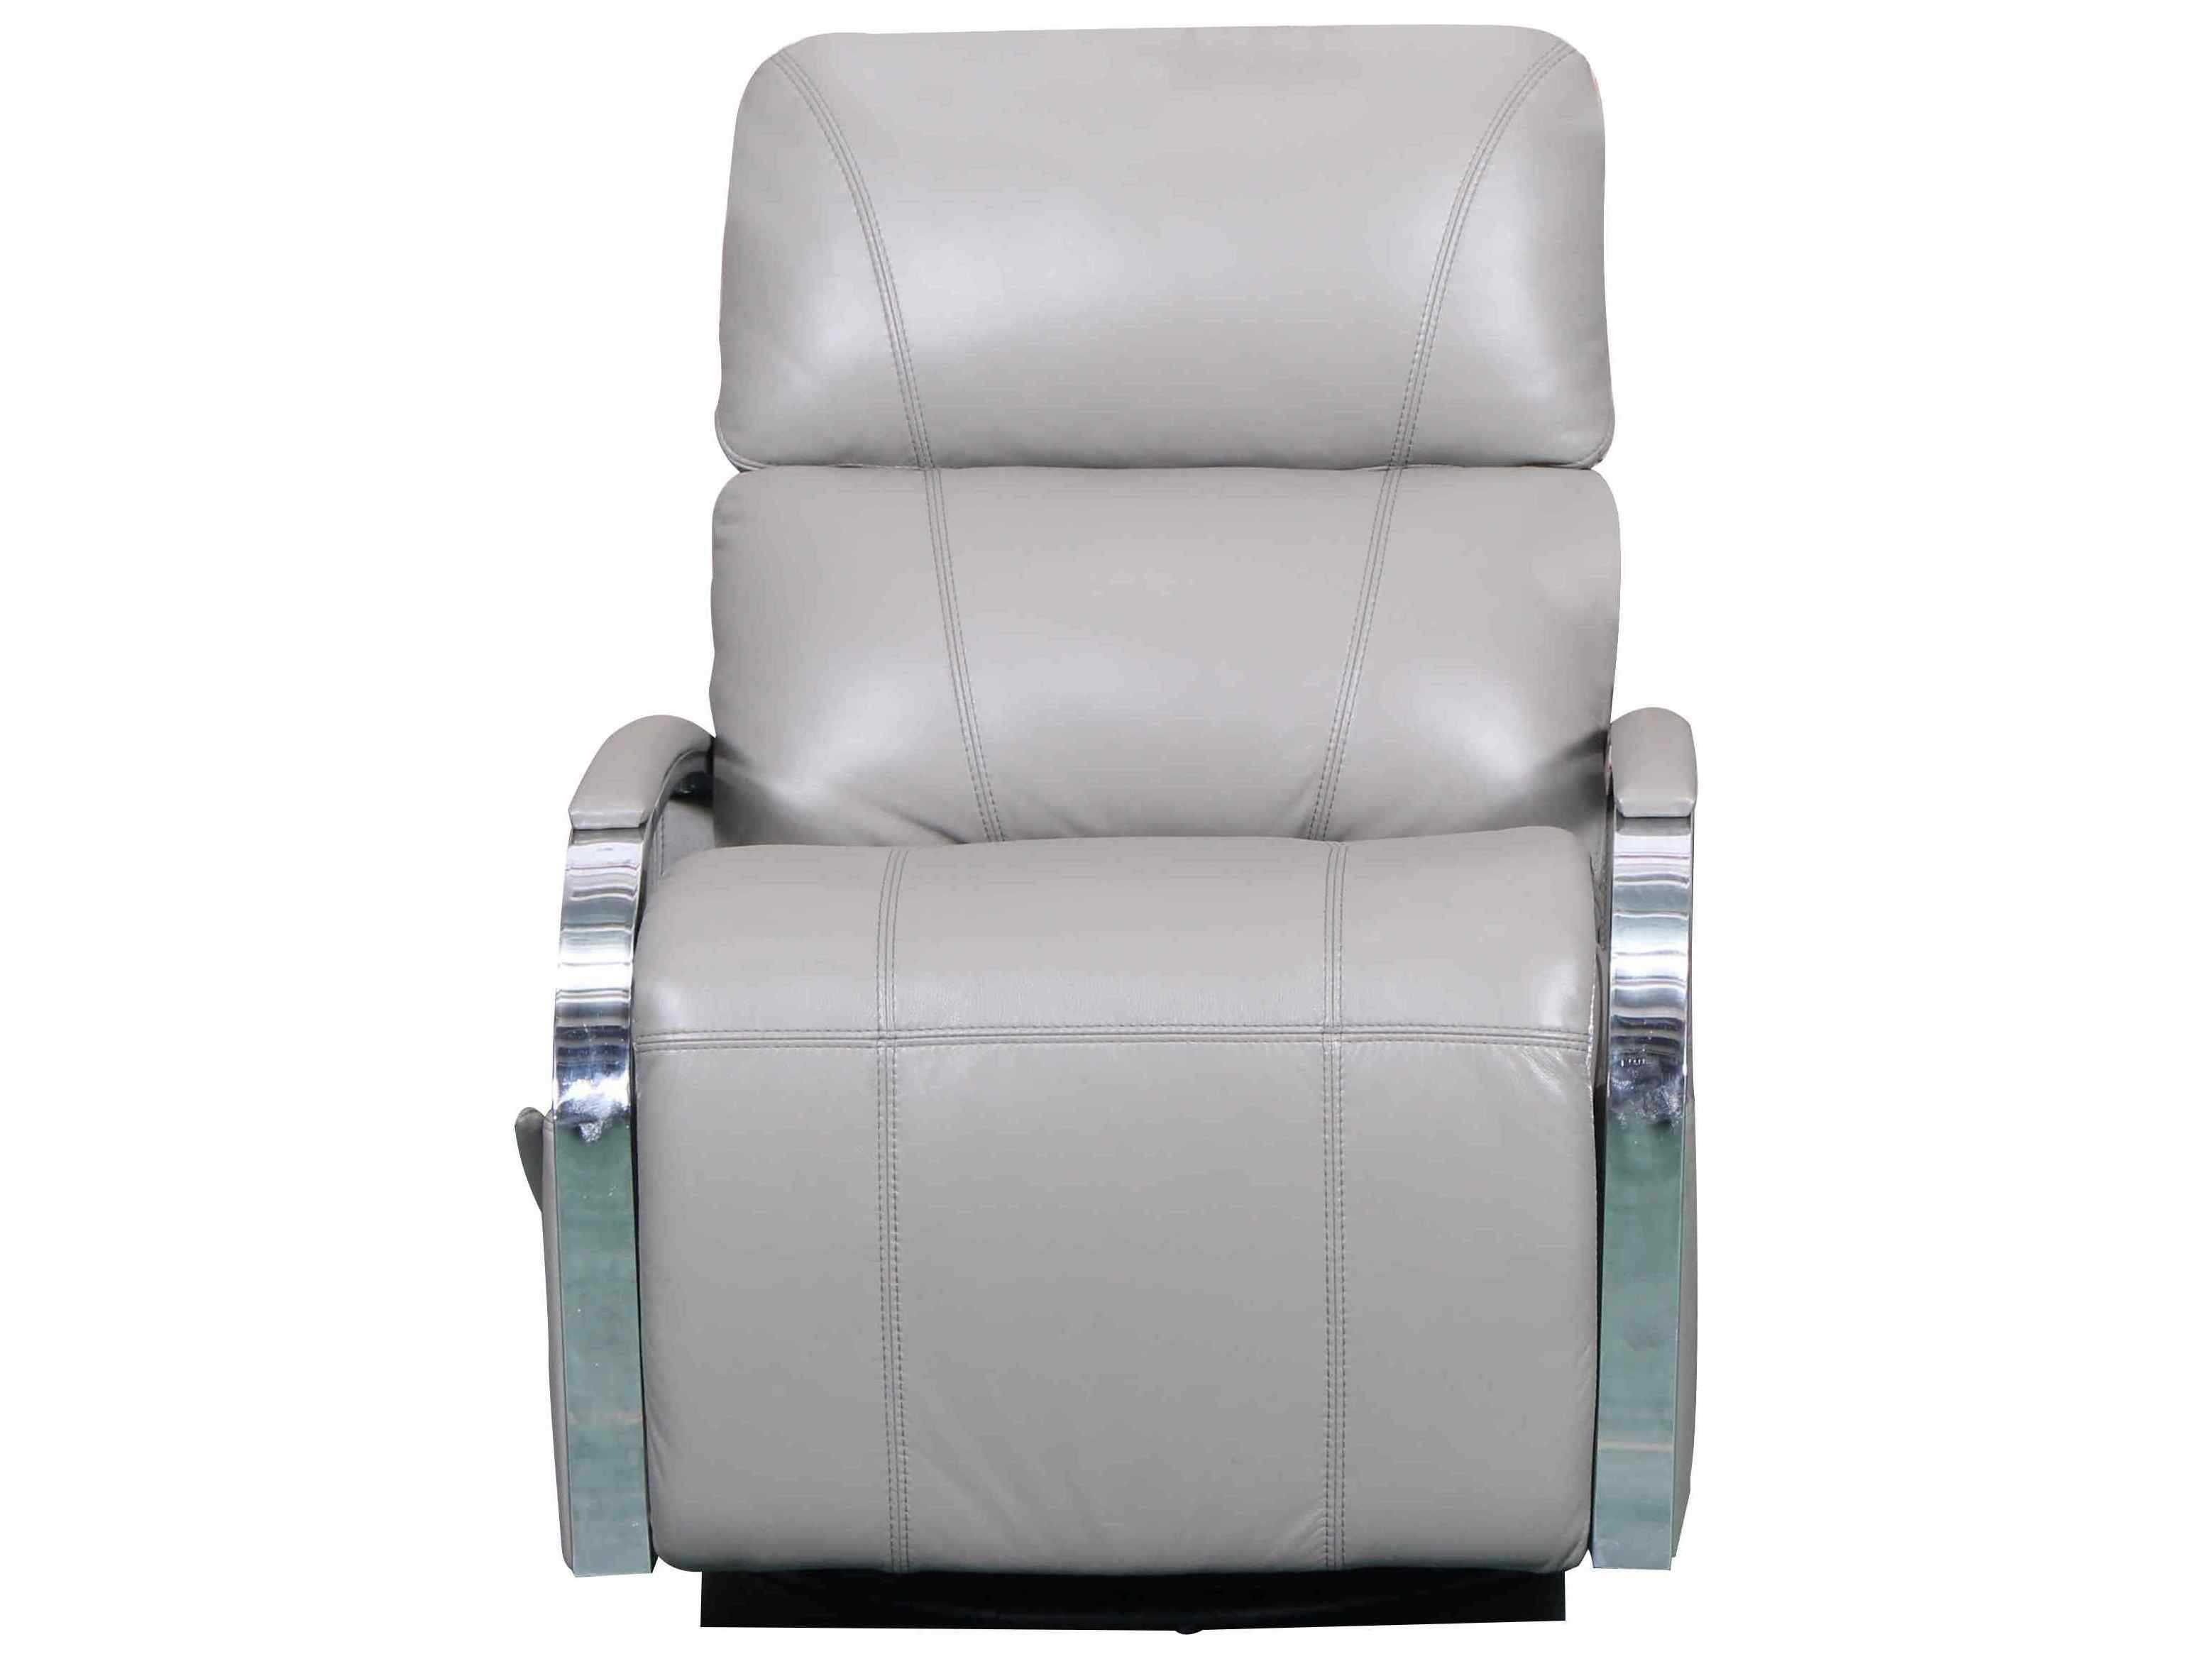 swivel chair regal graco high 6 in 1 barcalounger modern expressions glider